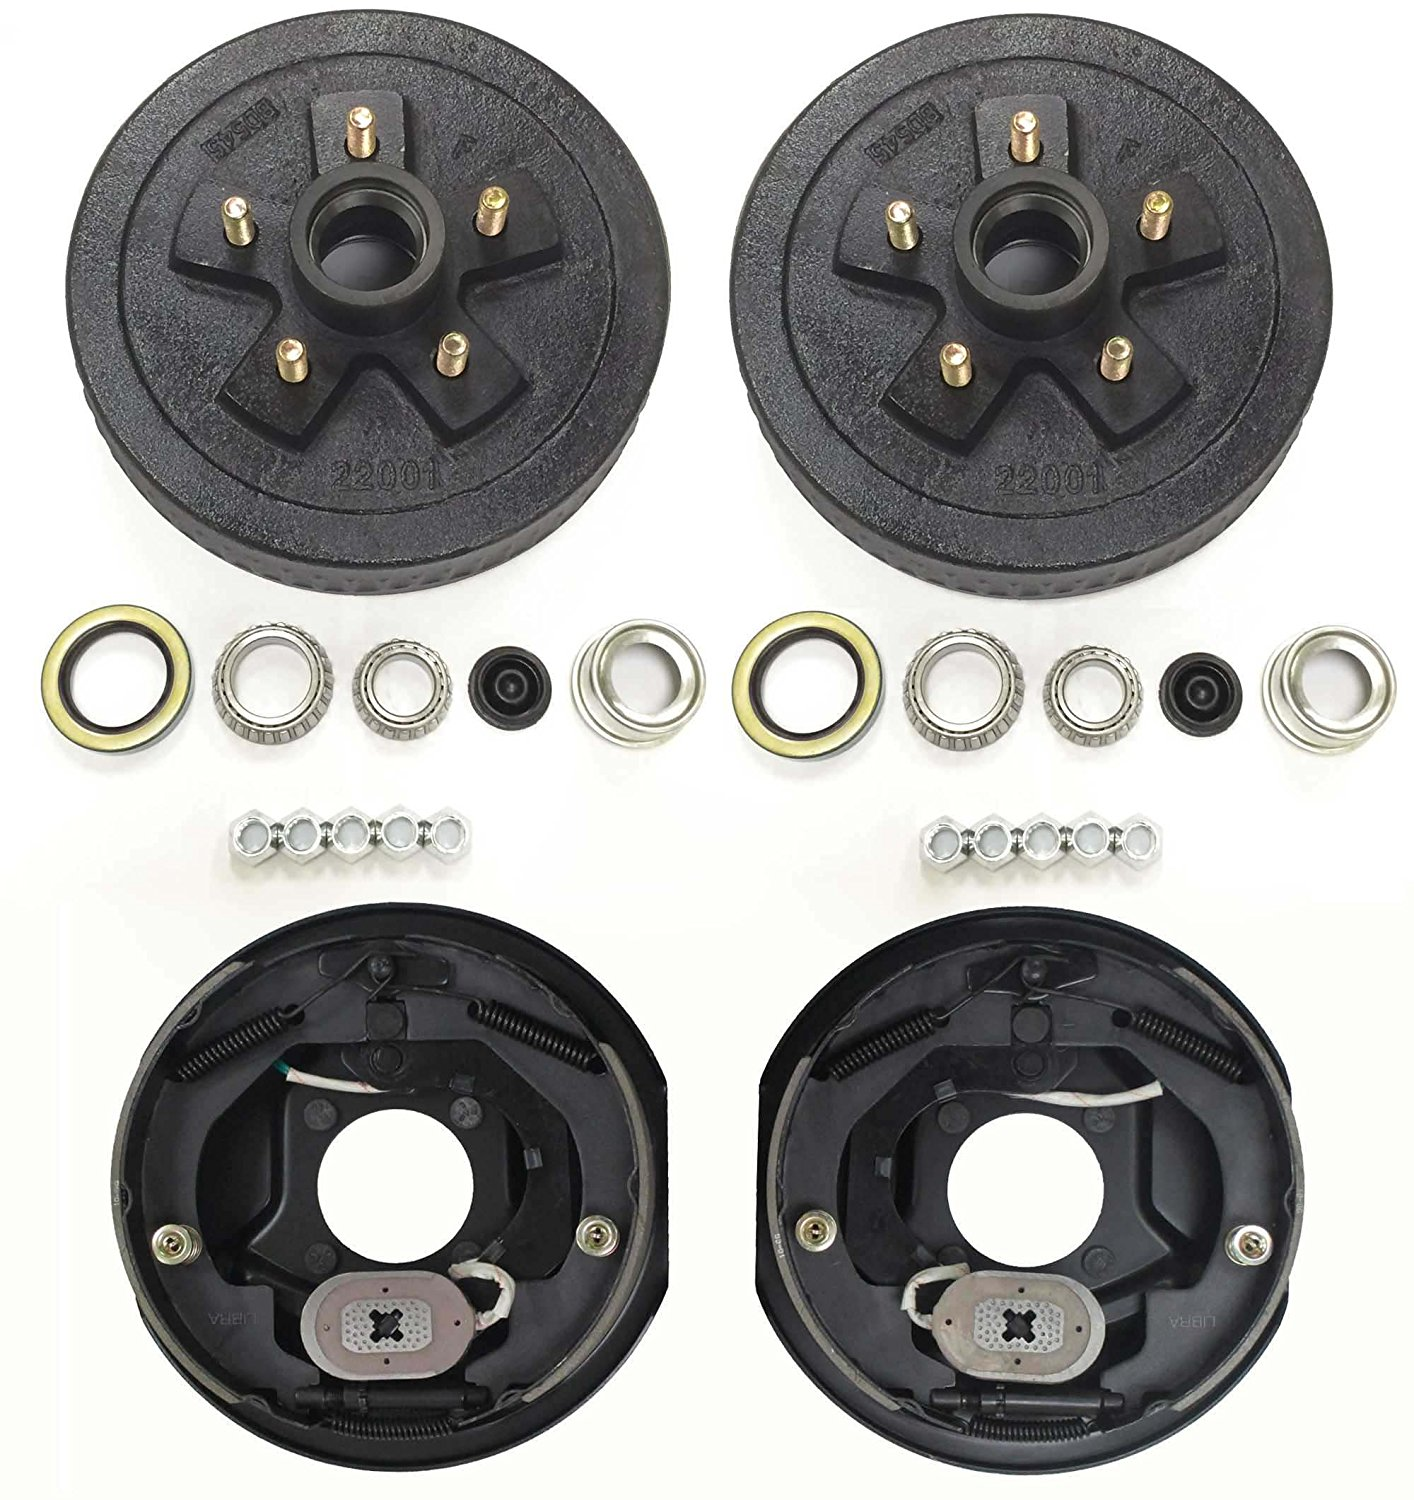 "Trailer 5 on 4.5"" B.C. Hub Drum Kits with 10""x2-1/4"" Electric Brakes for 3500 Lbs Axle"